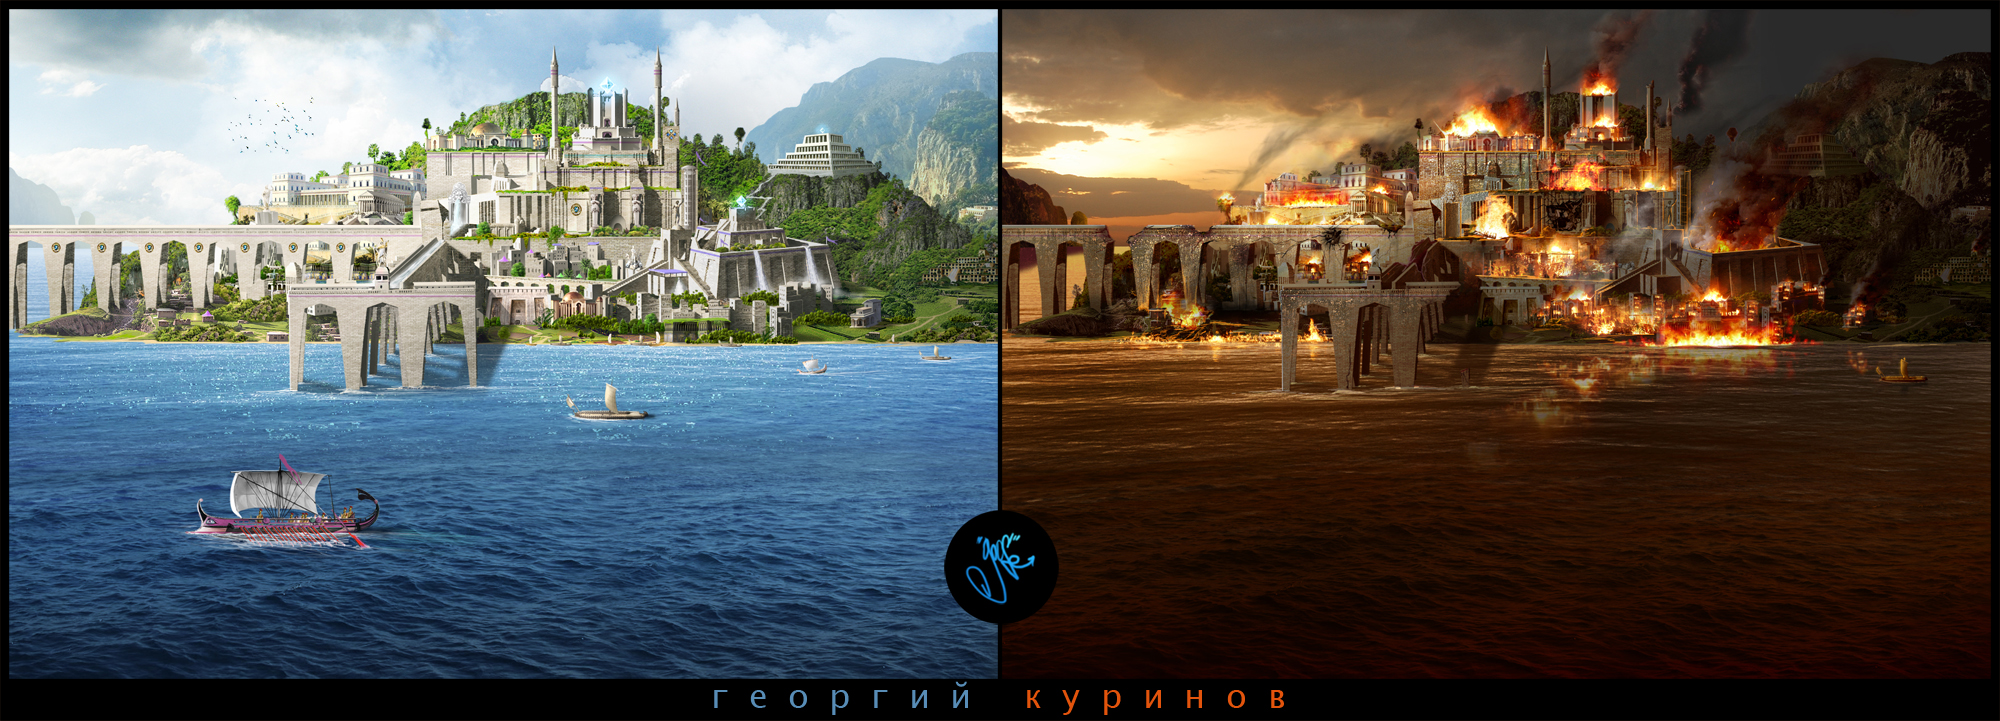 Lords of Atlantis [Game Trailer] mattepaint к заставке 1